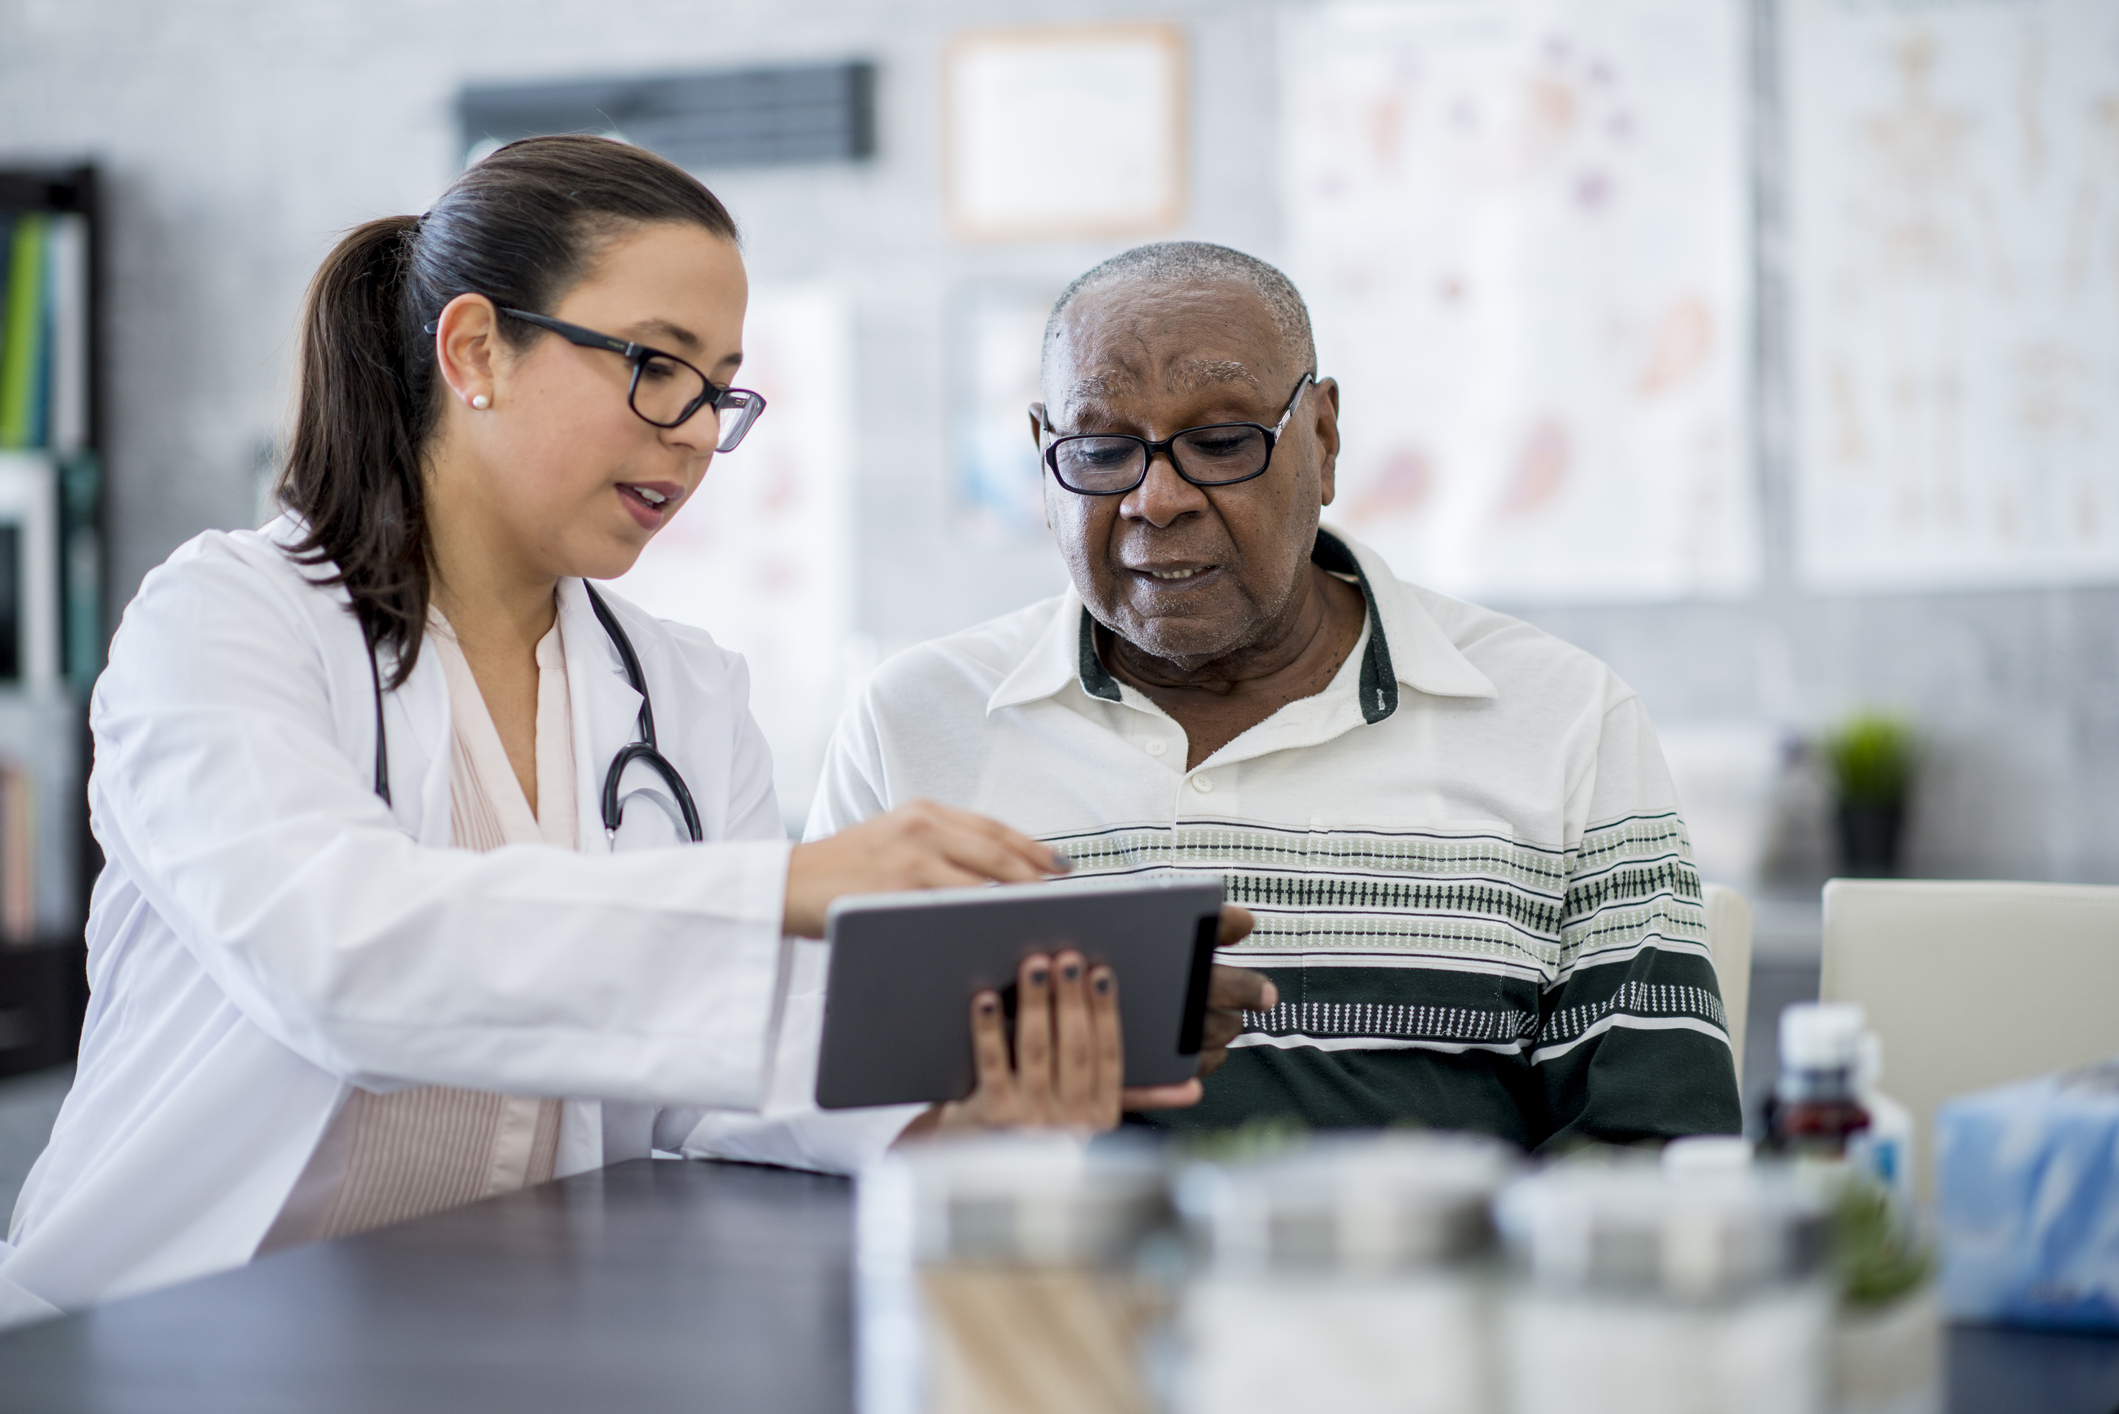 Young white physician showing a tablet to an elderly Black patient